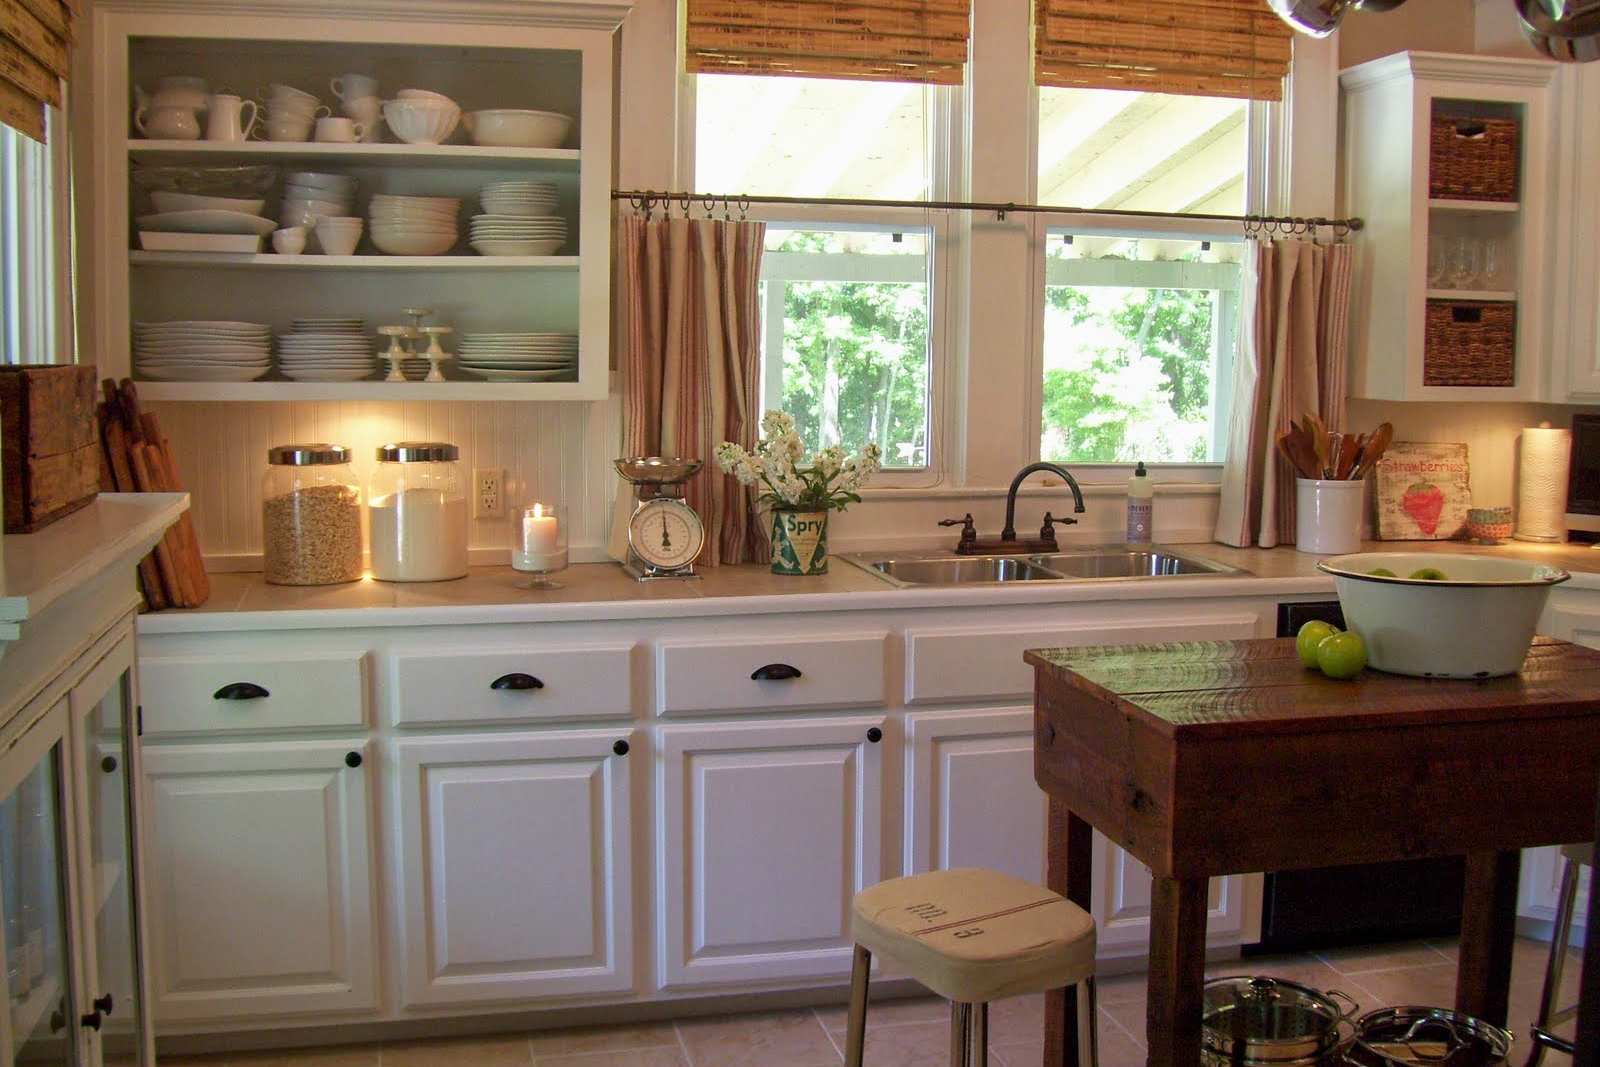 Remodeling A Kitchen Do It Yourself Kitchen Remodel - Kitchen remodel on a budget pictures